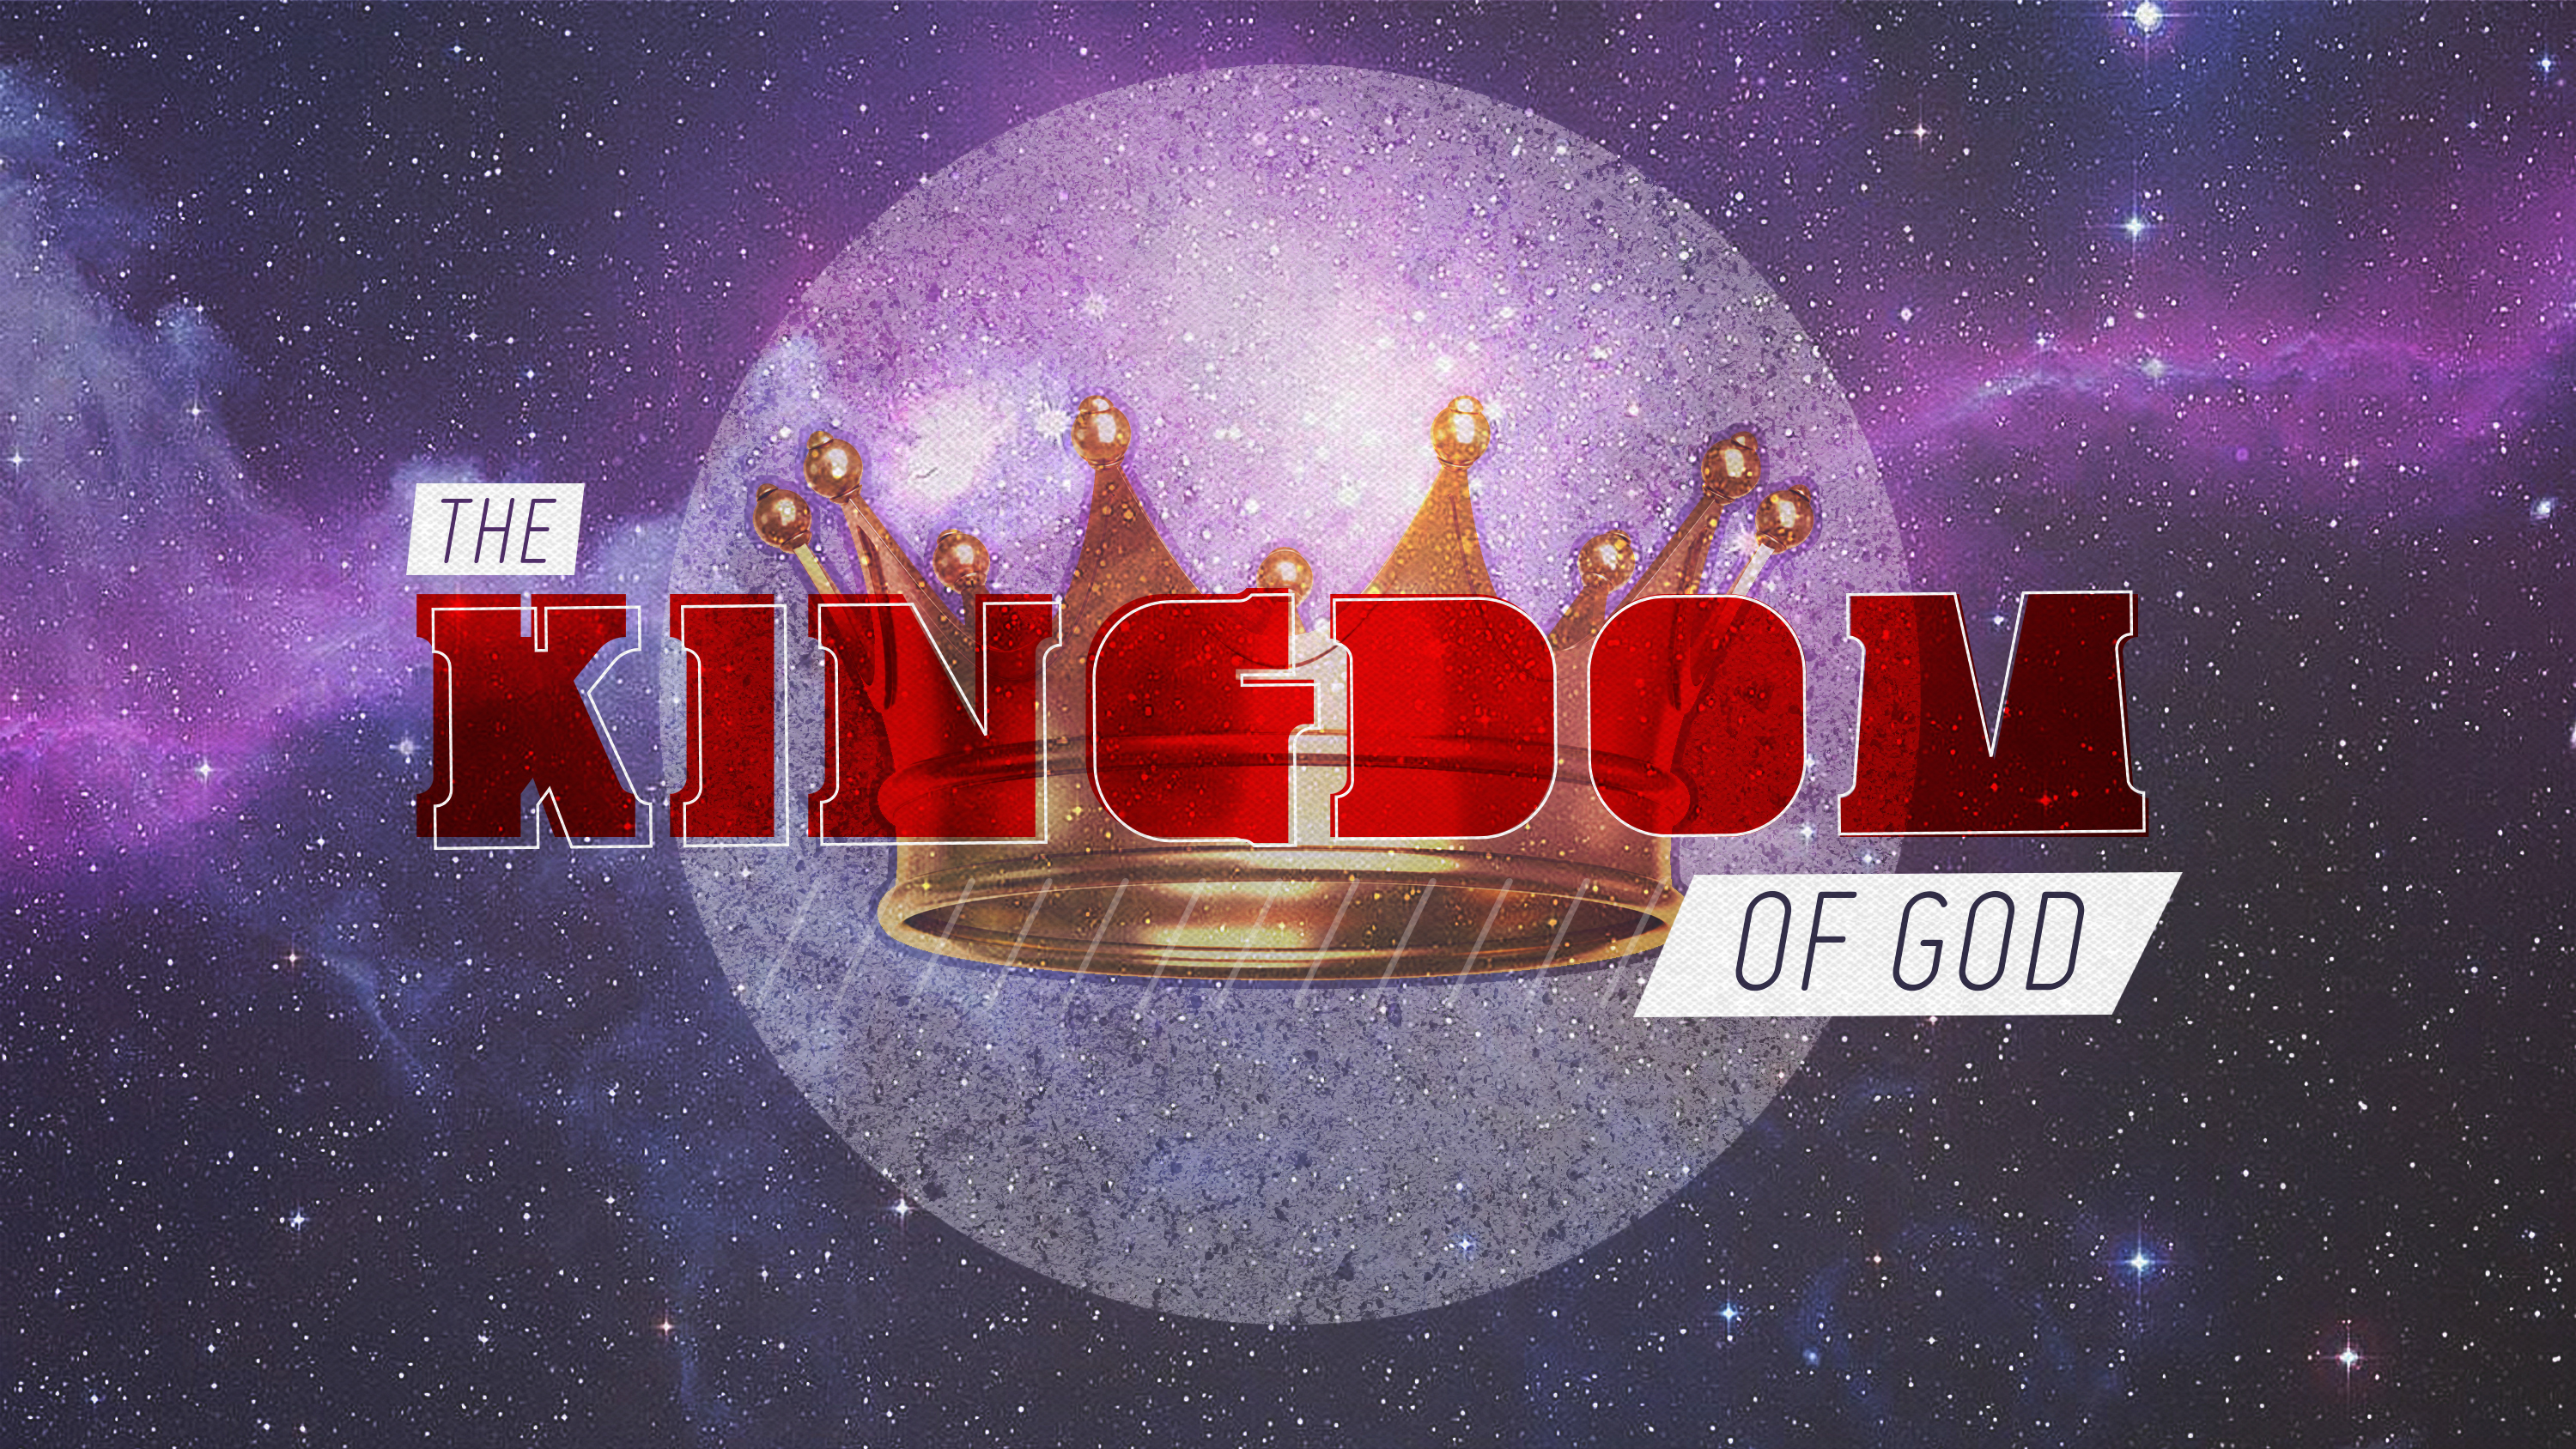 Artwork for The Kingdom of God Part 7 11-23-14